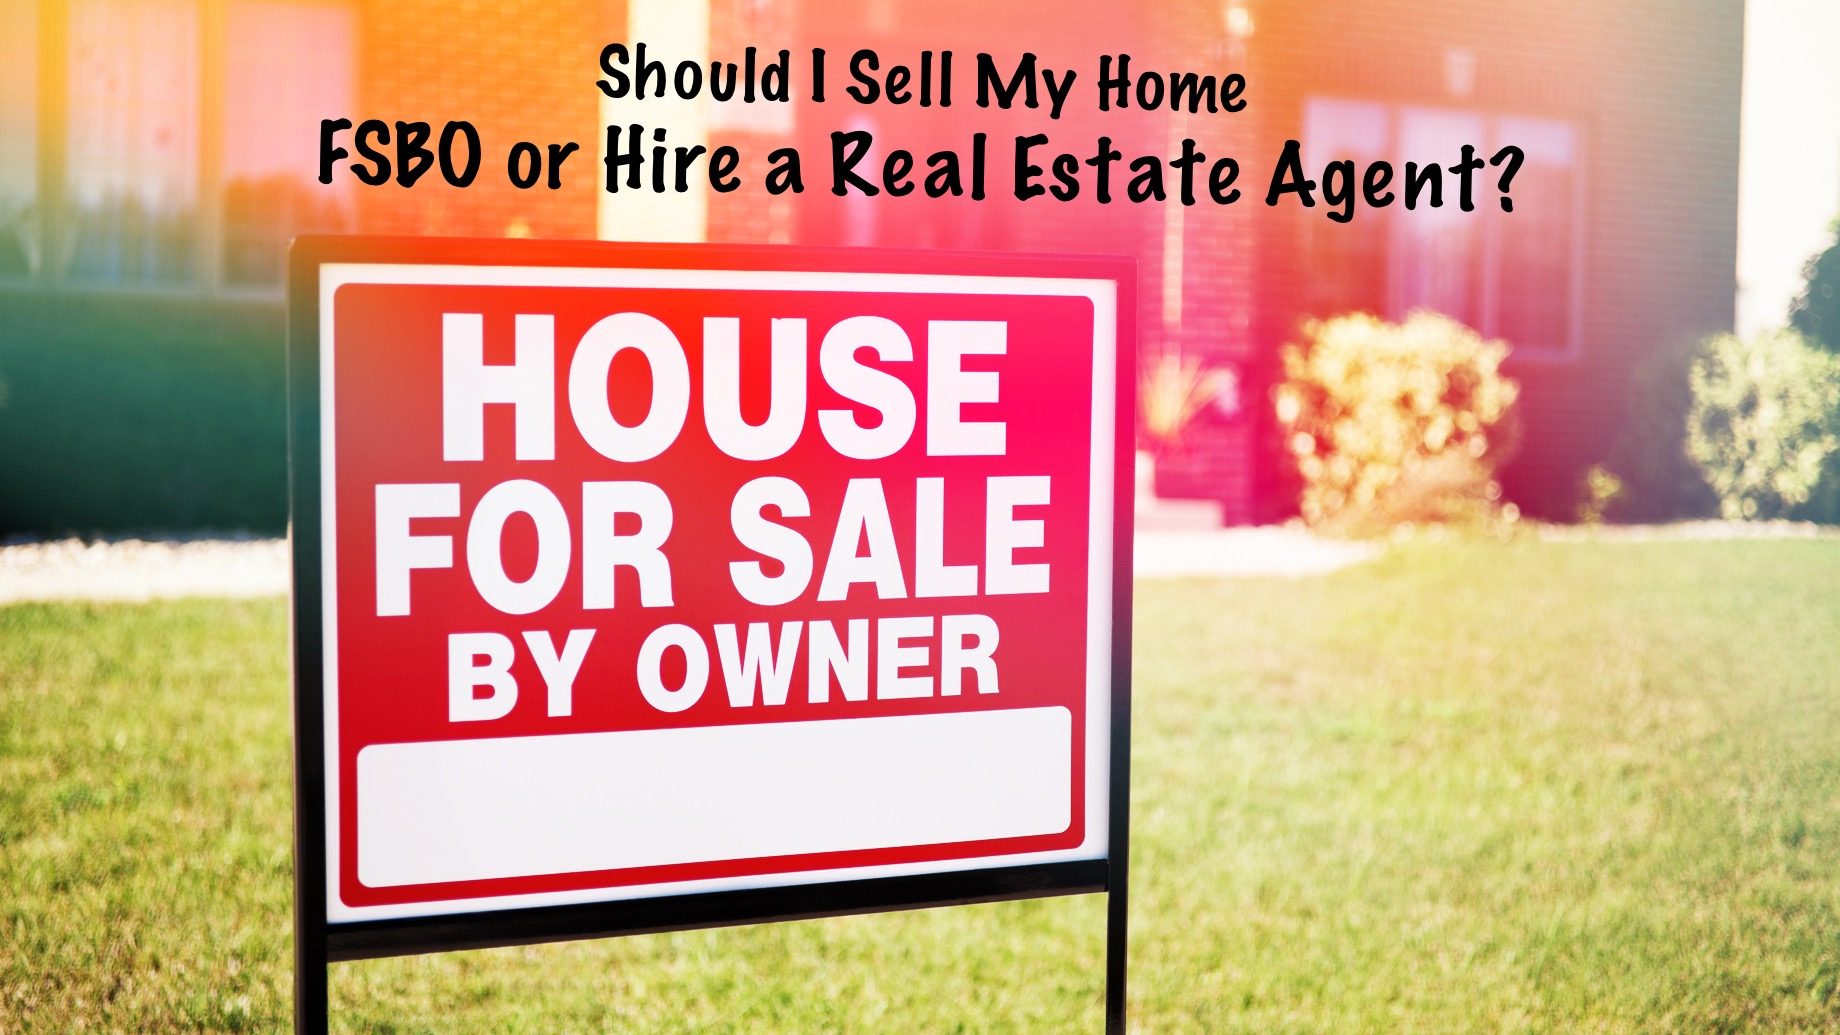 Should I Sell My Home FSBO or Hire a Real Estate Agent?